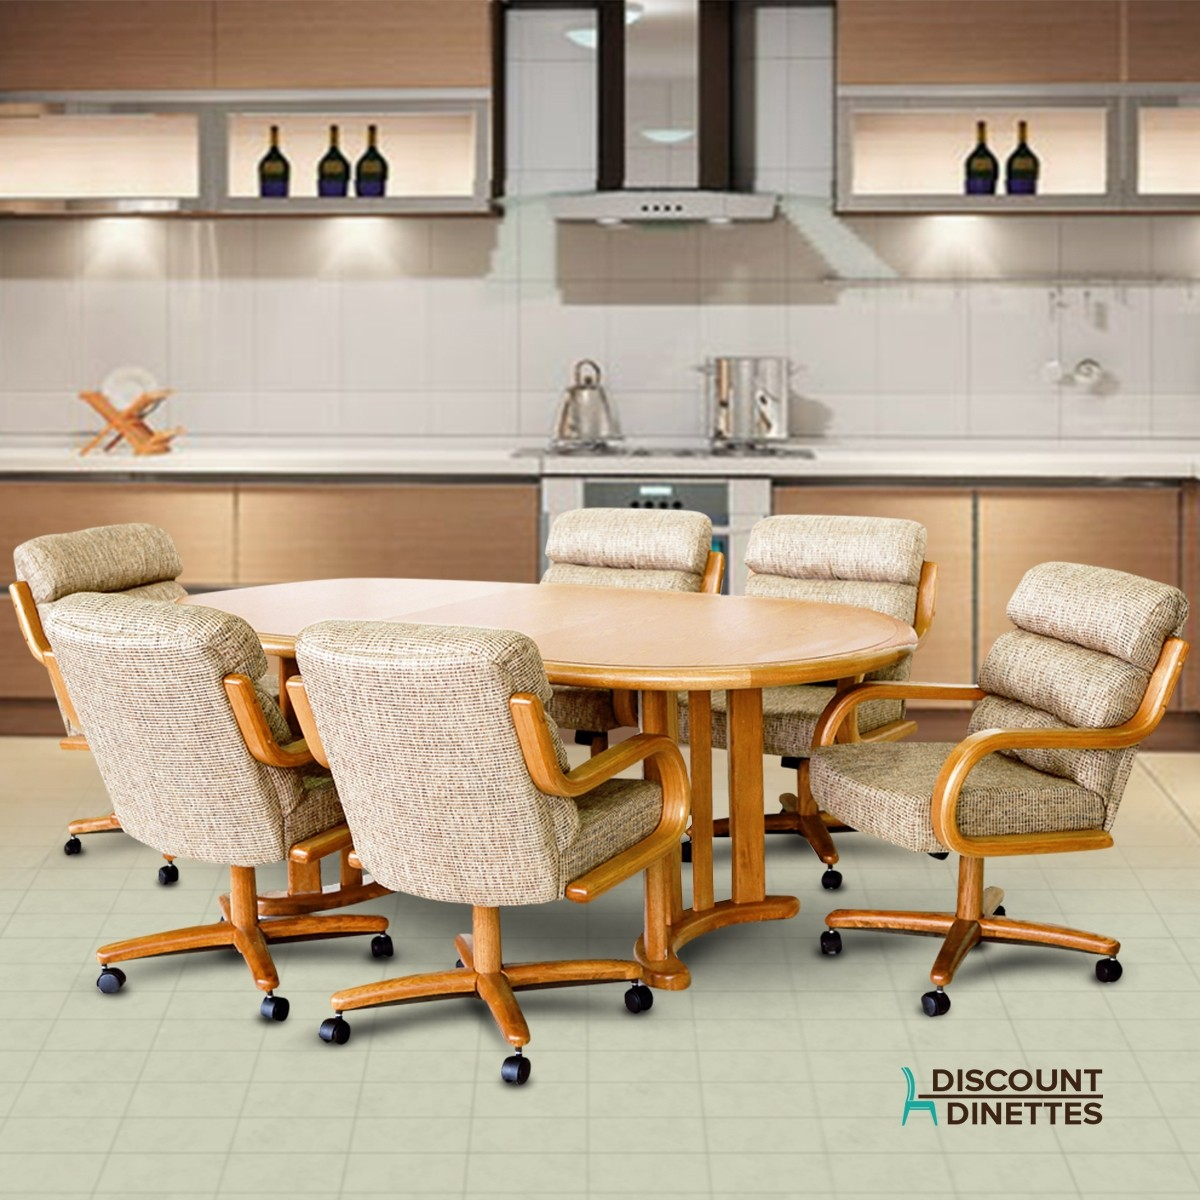 Dinette Sets Cheap: Chromcraft Furniture T817-77 And C137-936 Wood Dinette Set